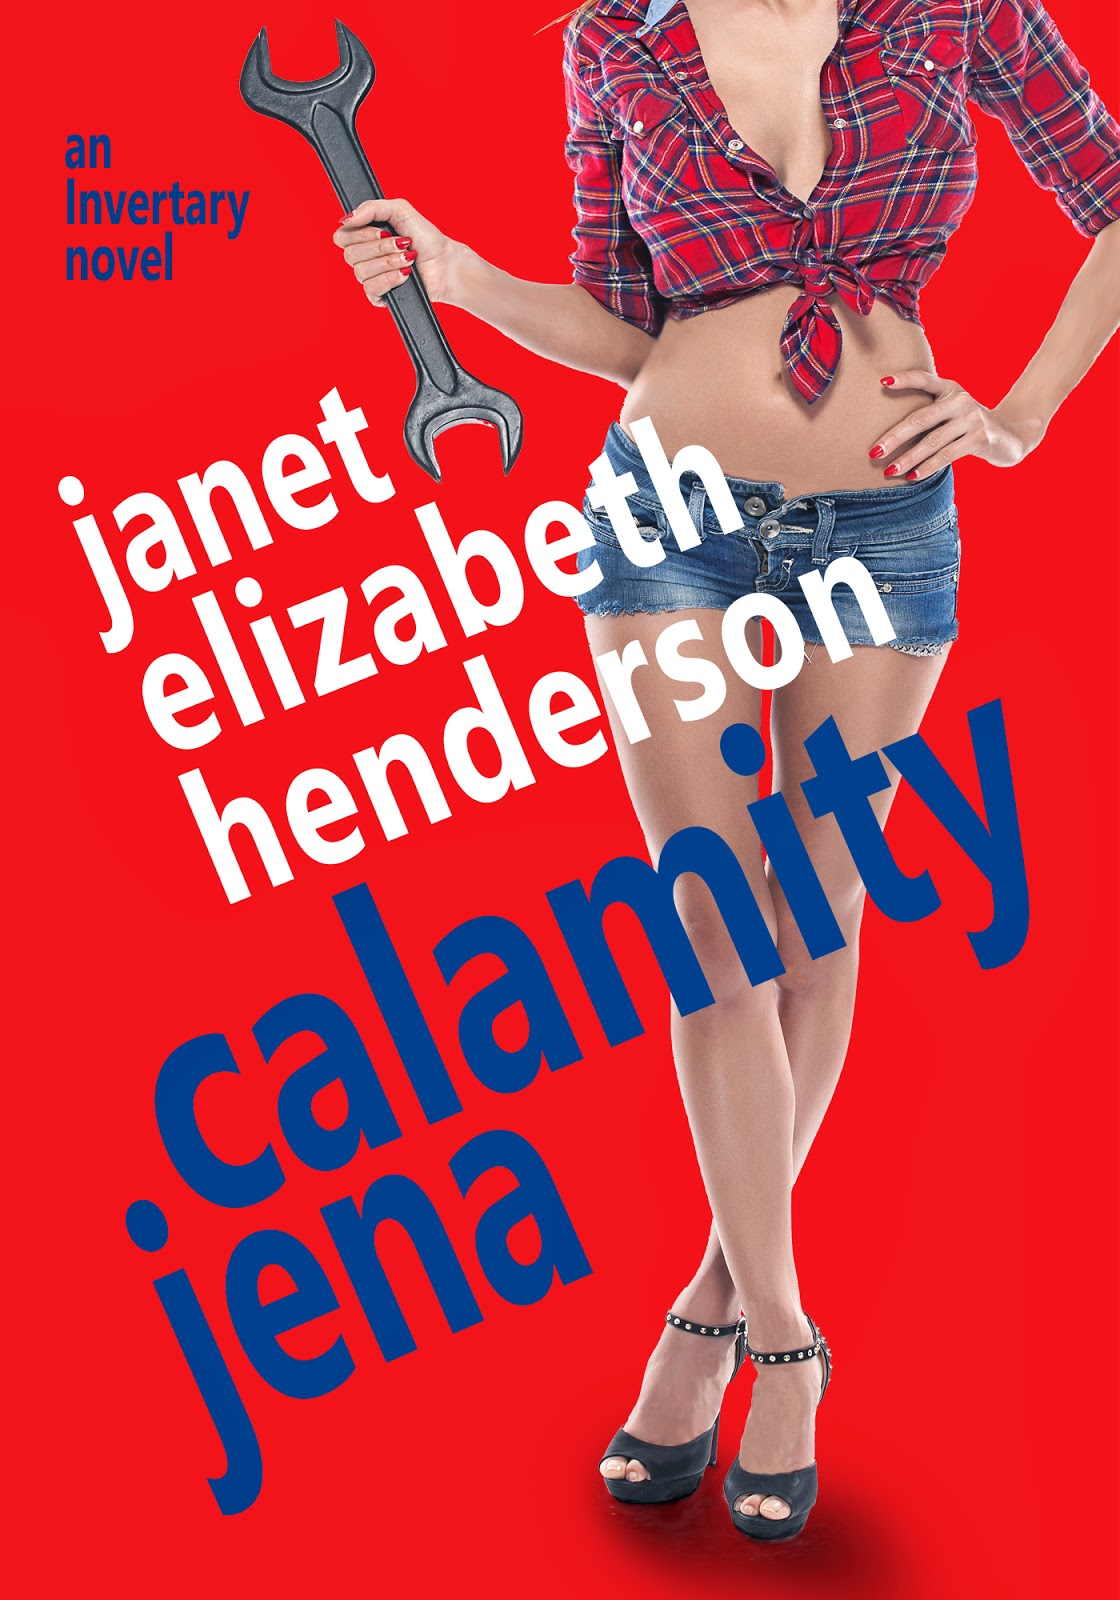 click to go to amazon's Calamity Jena page